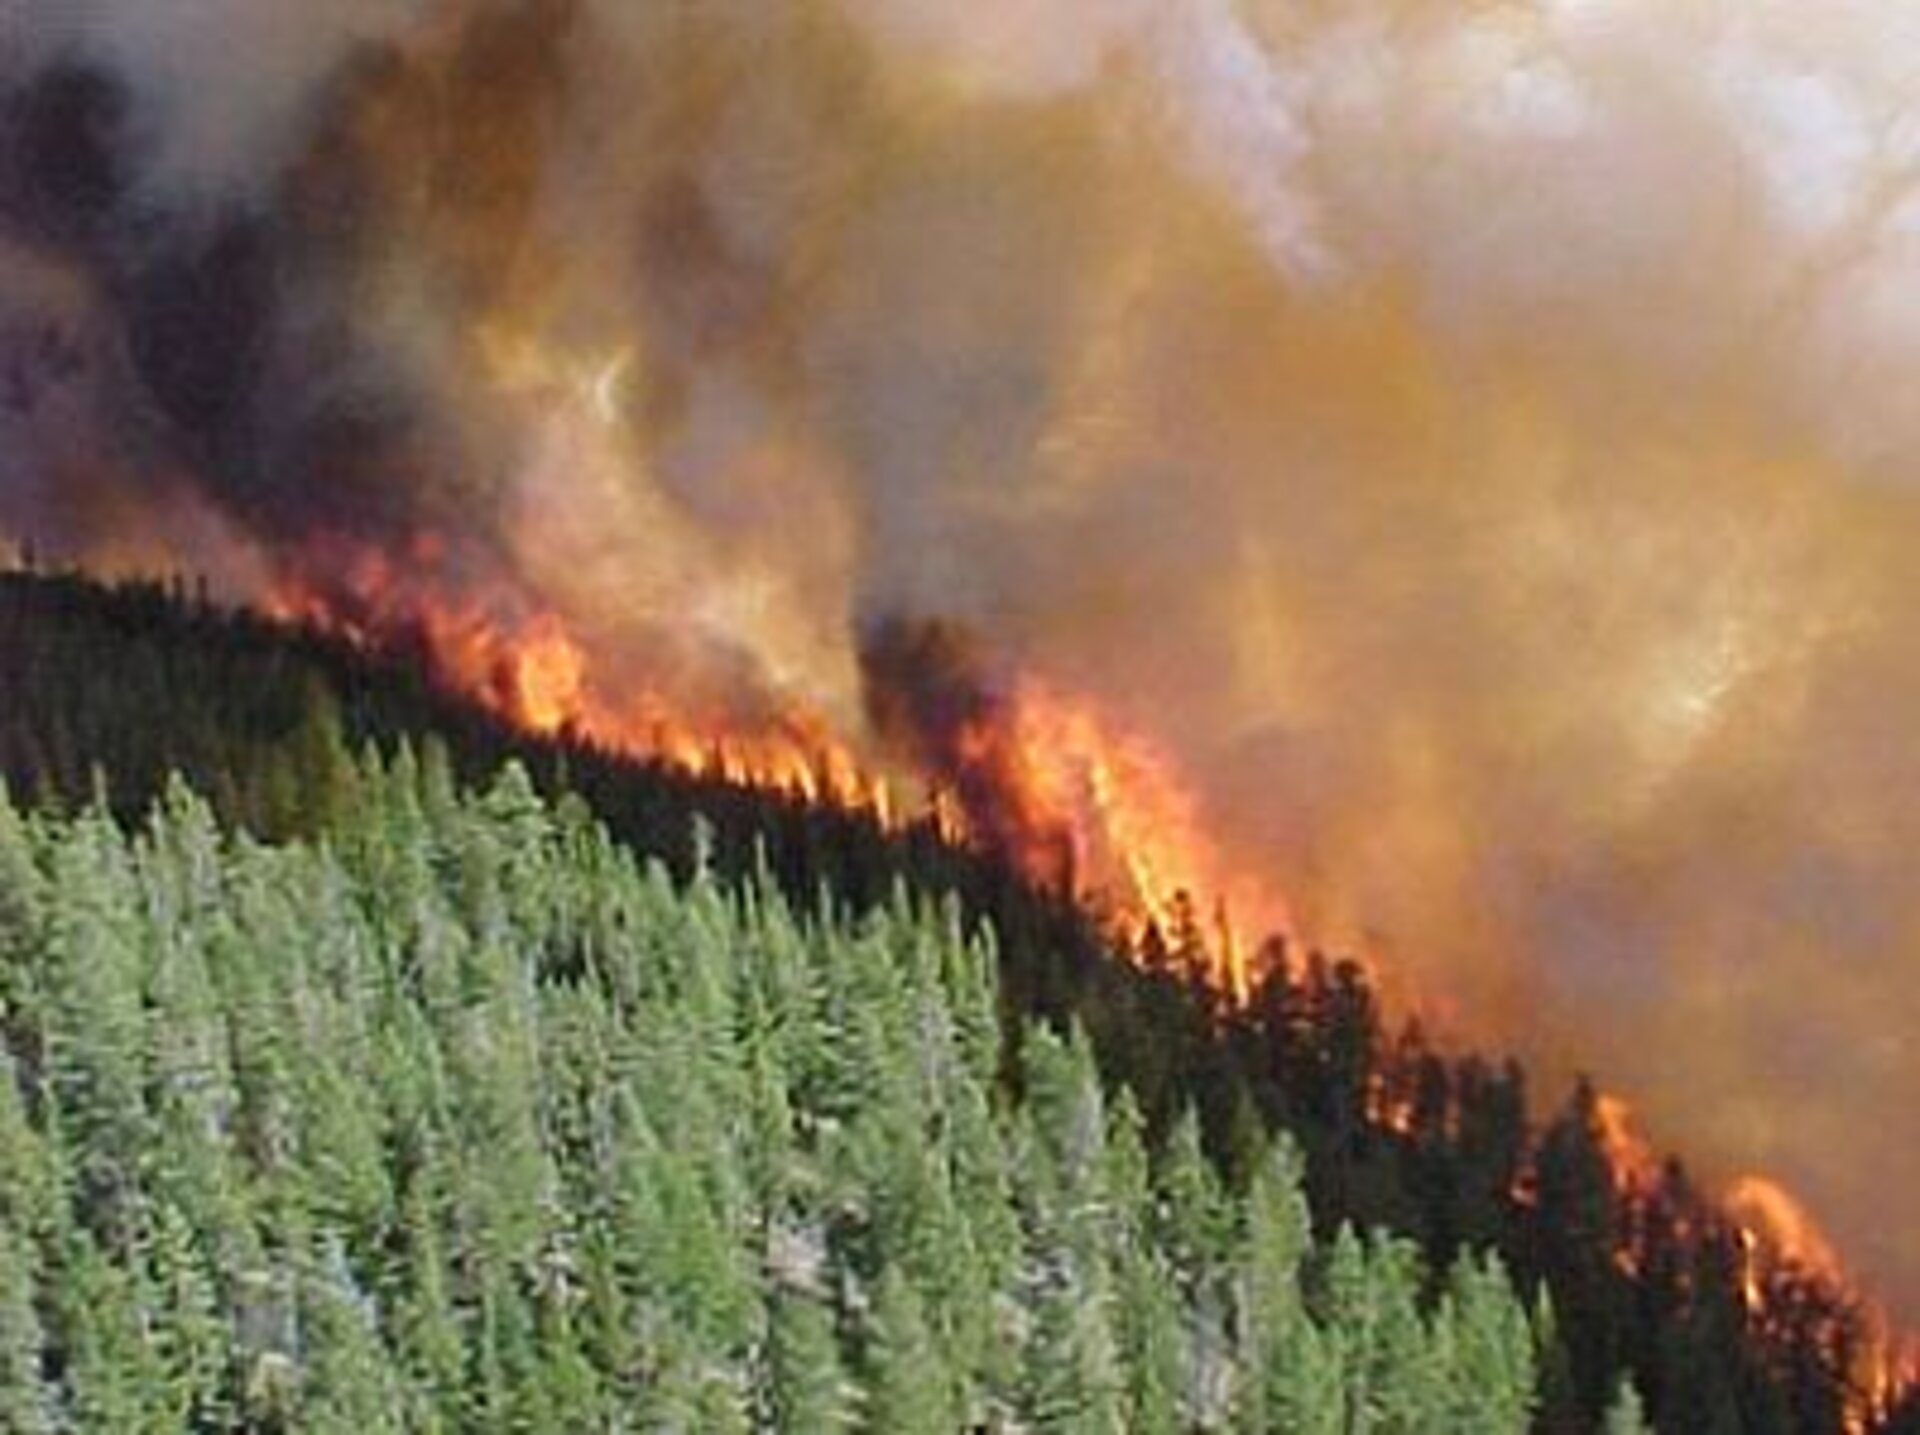 Cool Creek fire at its height due to strong winds